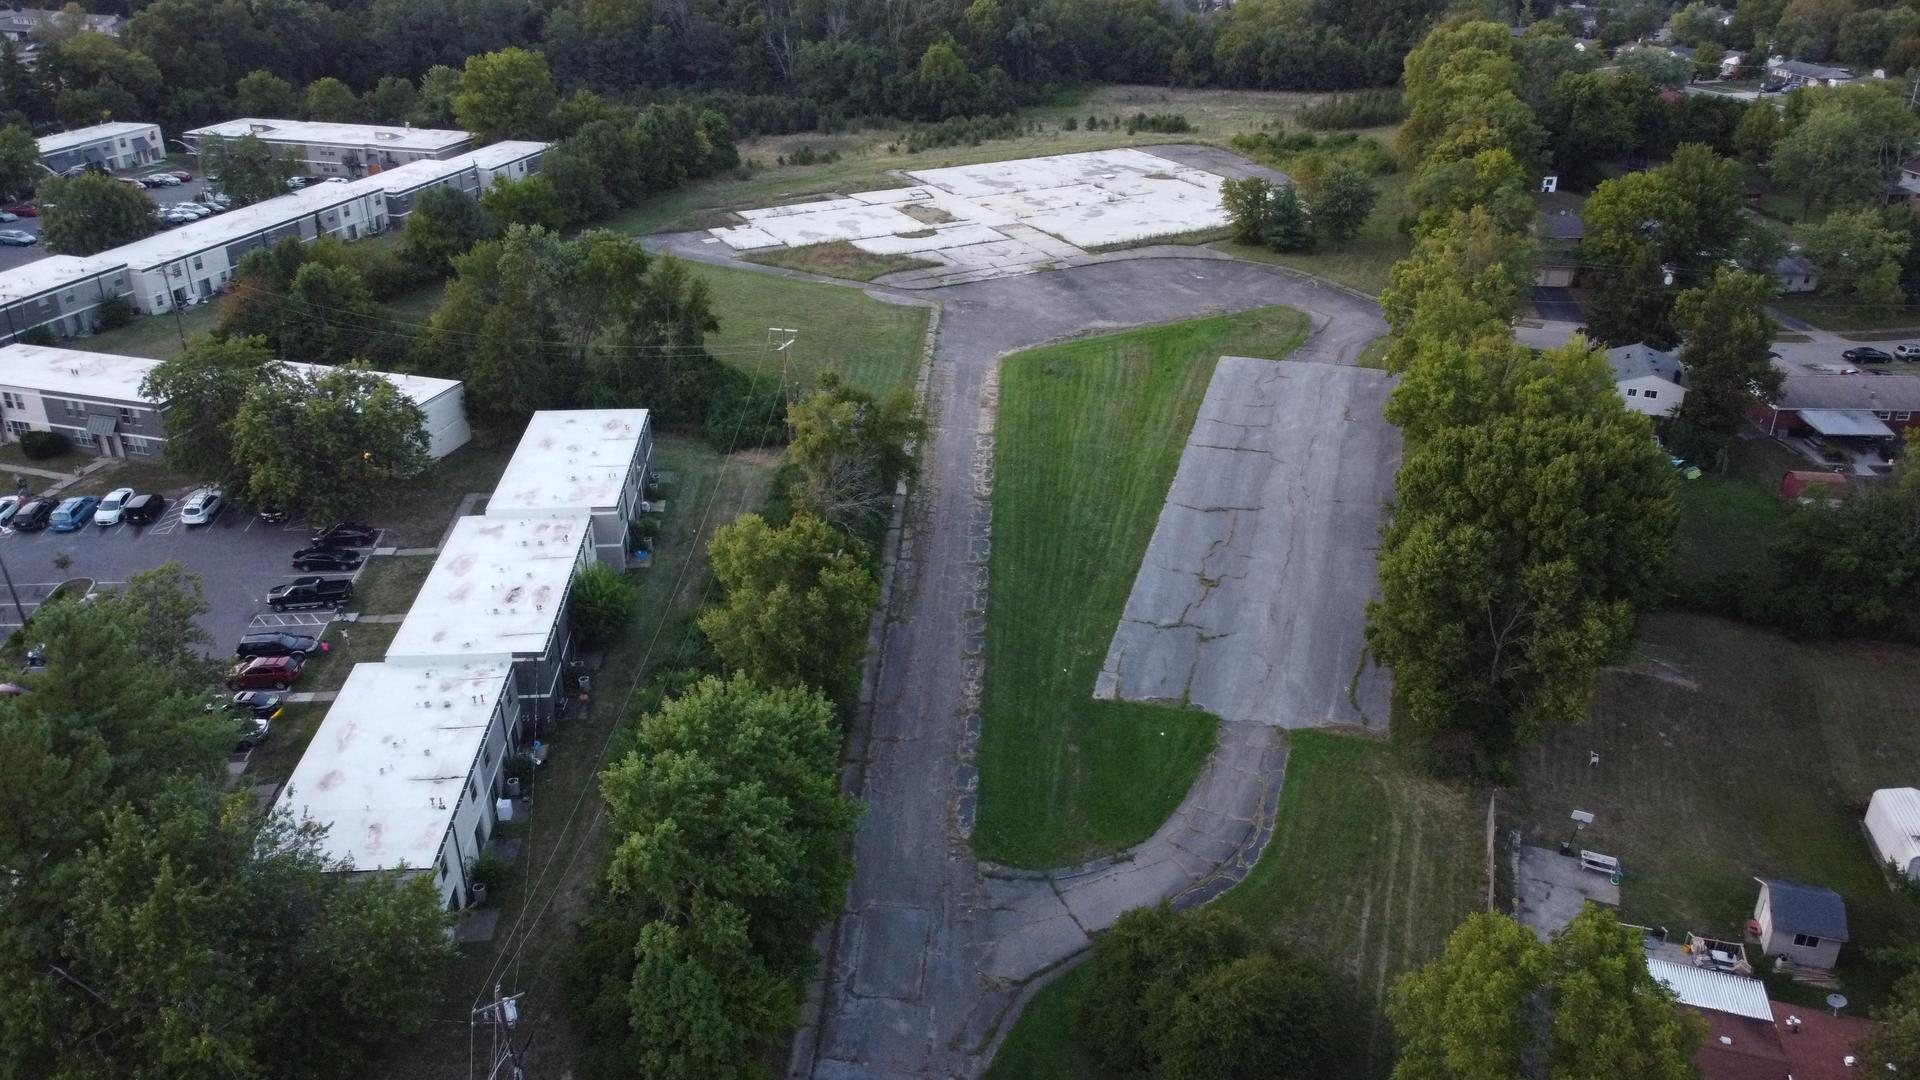 drone shot of Elc area and driveway